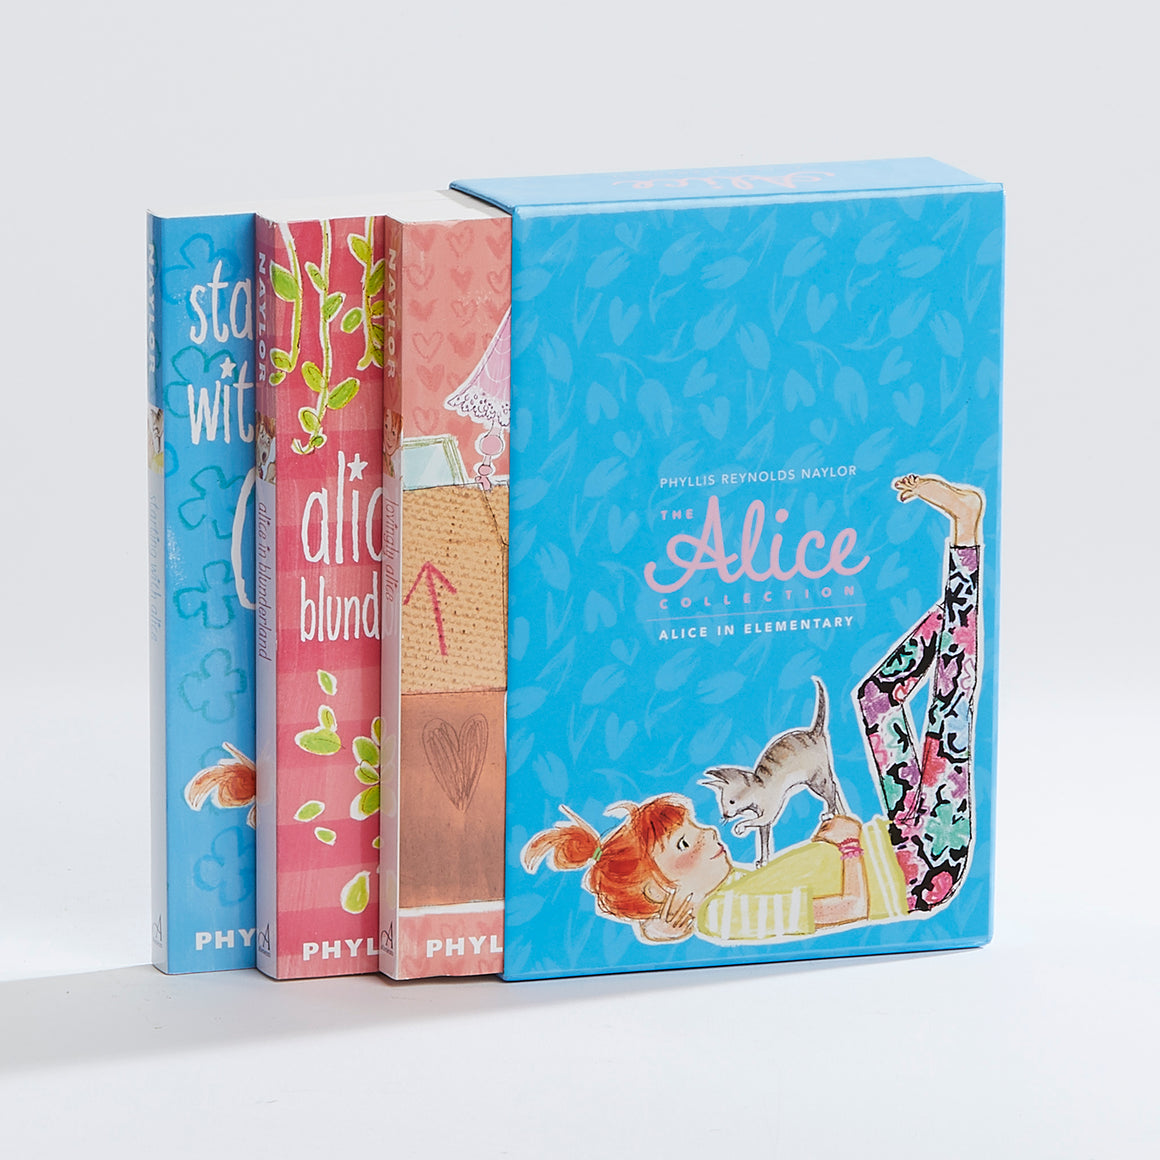 The Alice Collection; Alice in Elementary: Set includes Starting with Alice, Alice in Blunderland, and Lovingly Alice